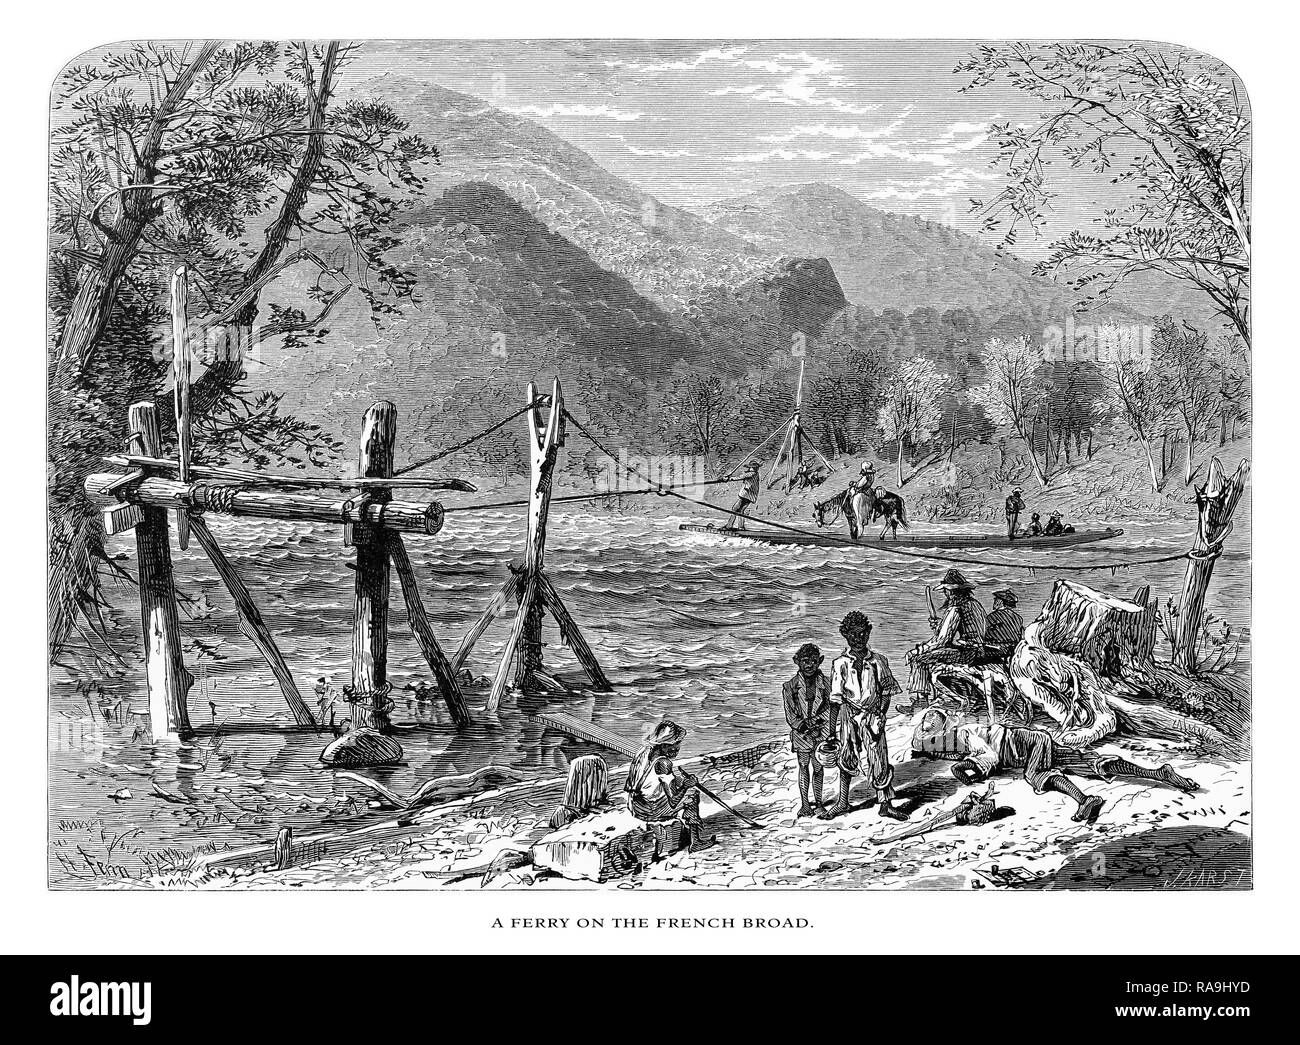 Ferry Crossing the French Broad River, North Carolina, United States, American Victorian Engraving, 1872 - Stock Image